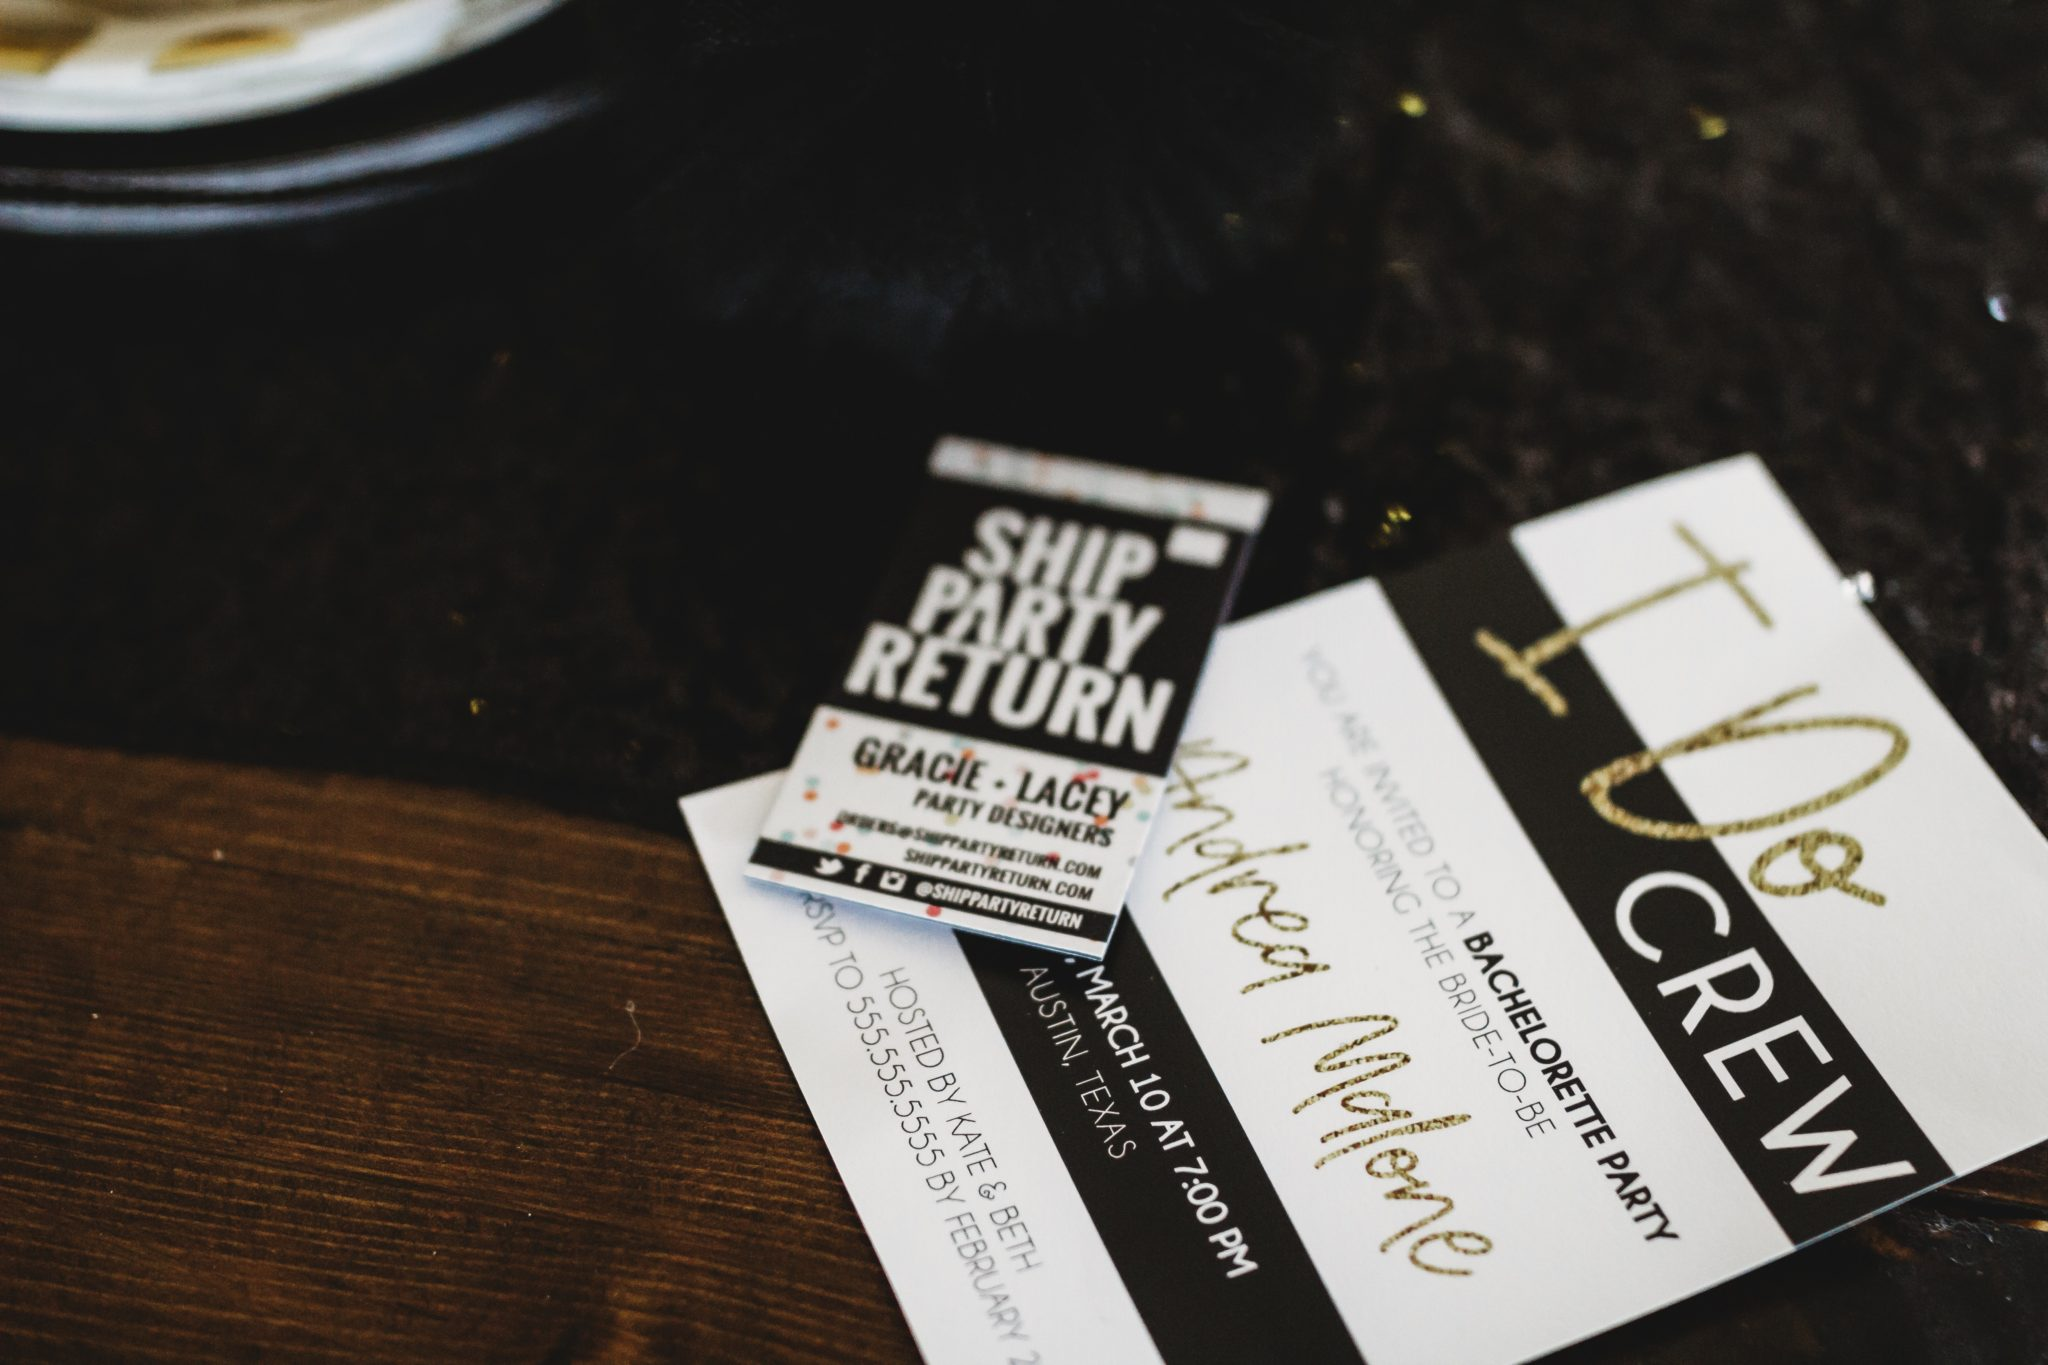 Ship Party Return, party decor, easiest way to plan a party